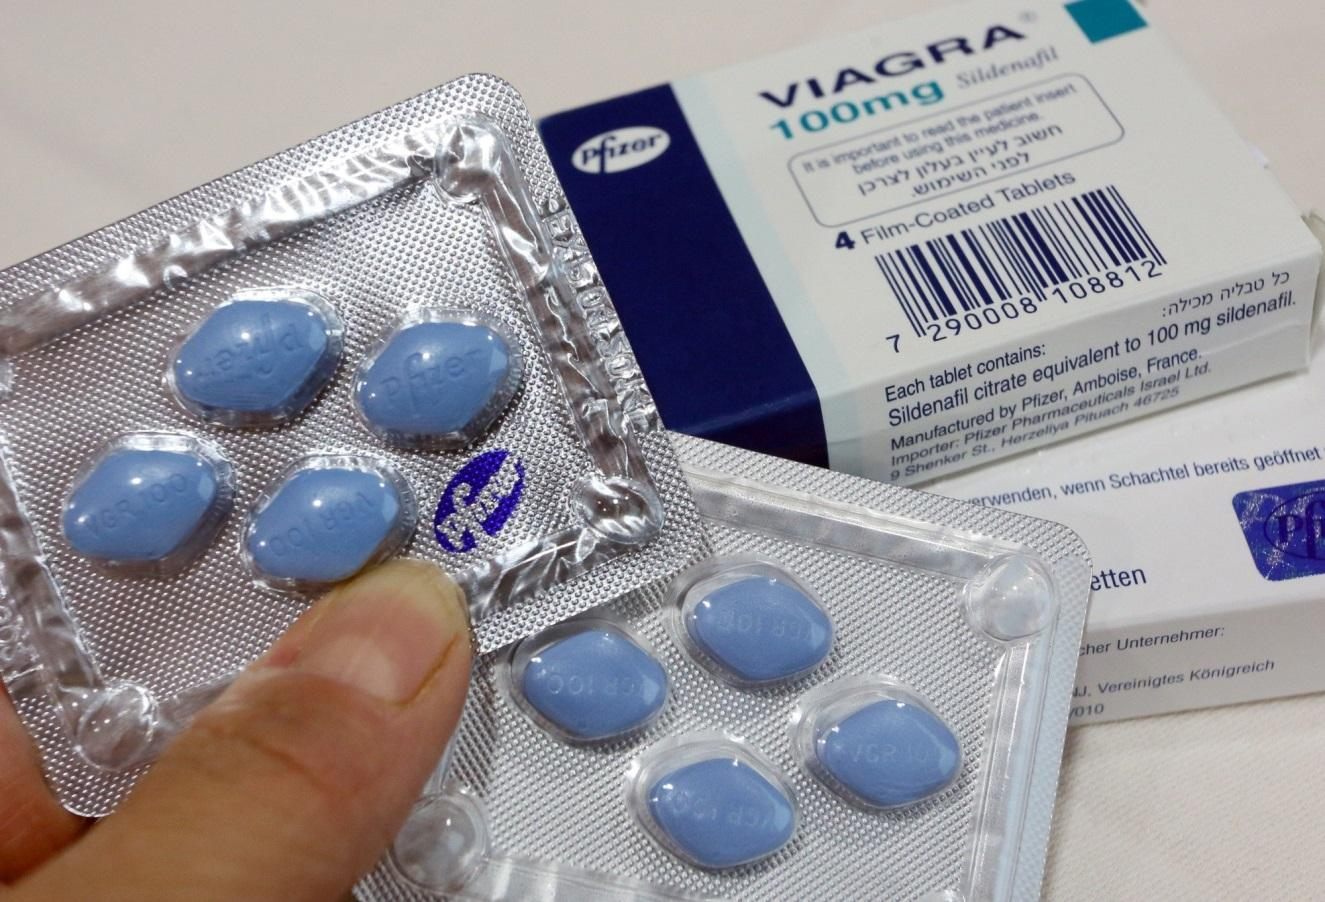 Viagra Pills from Pfizer